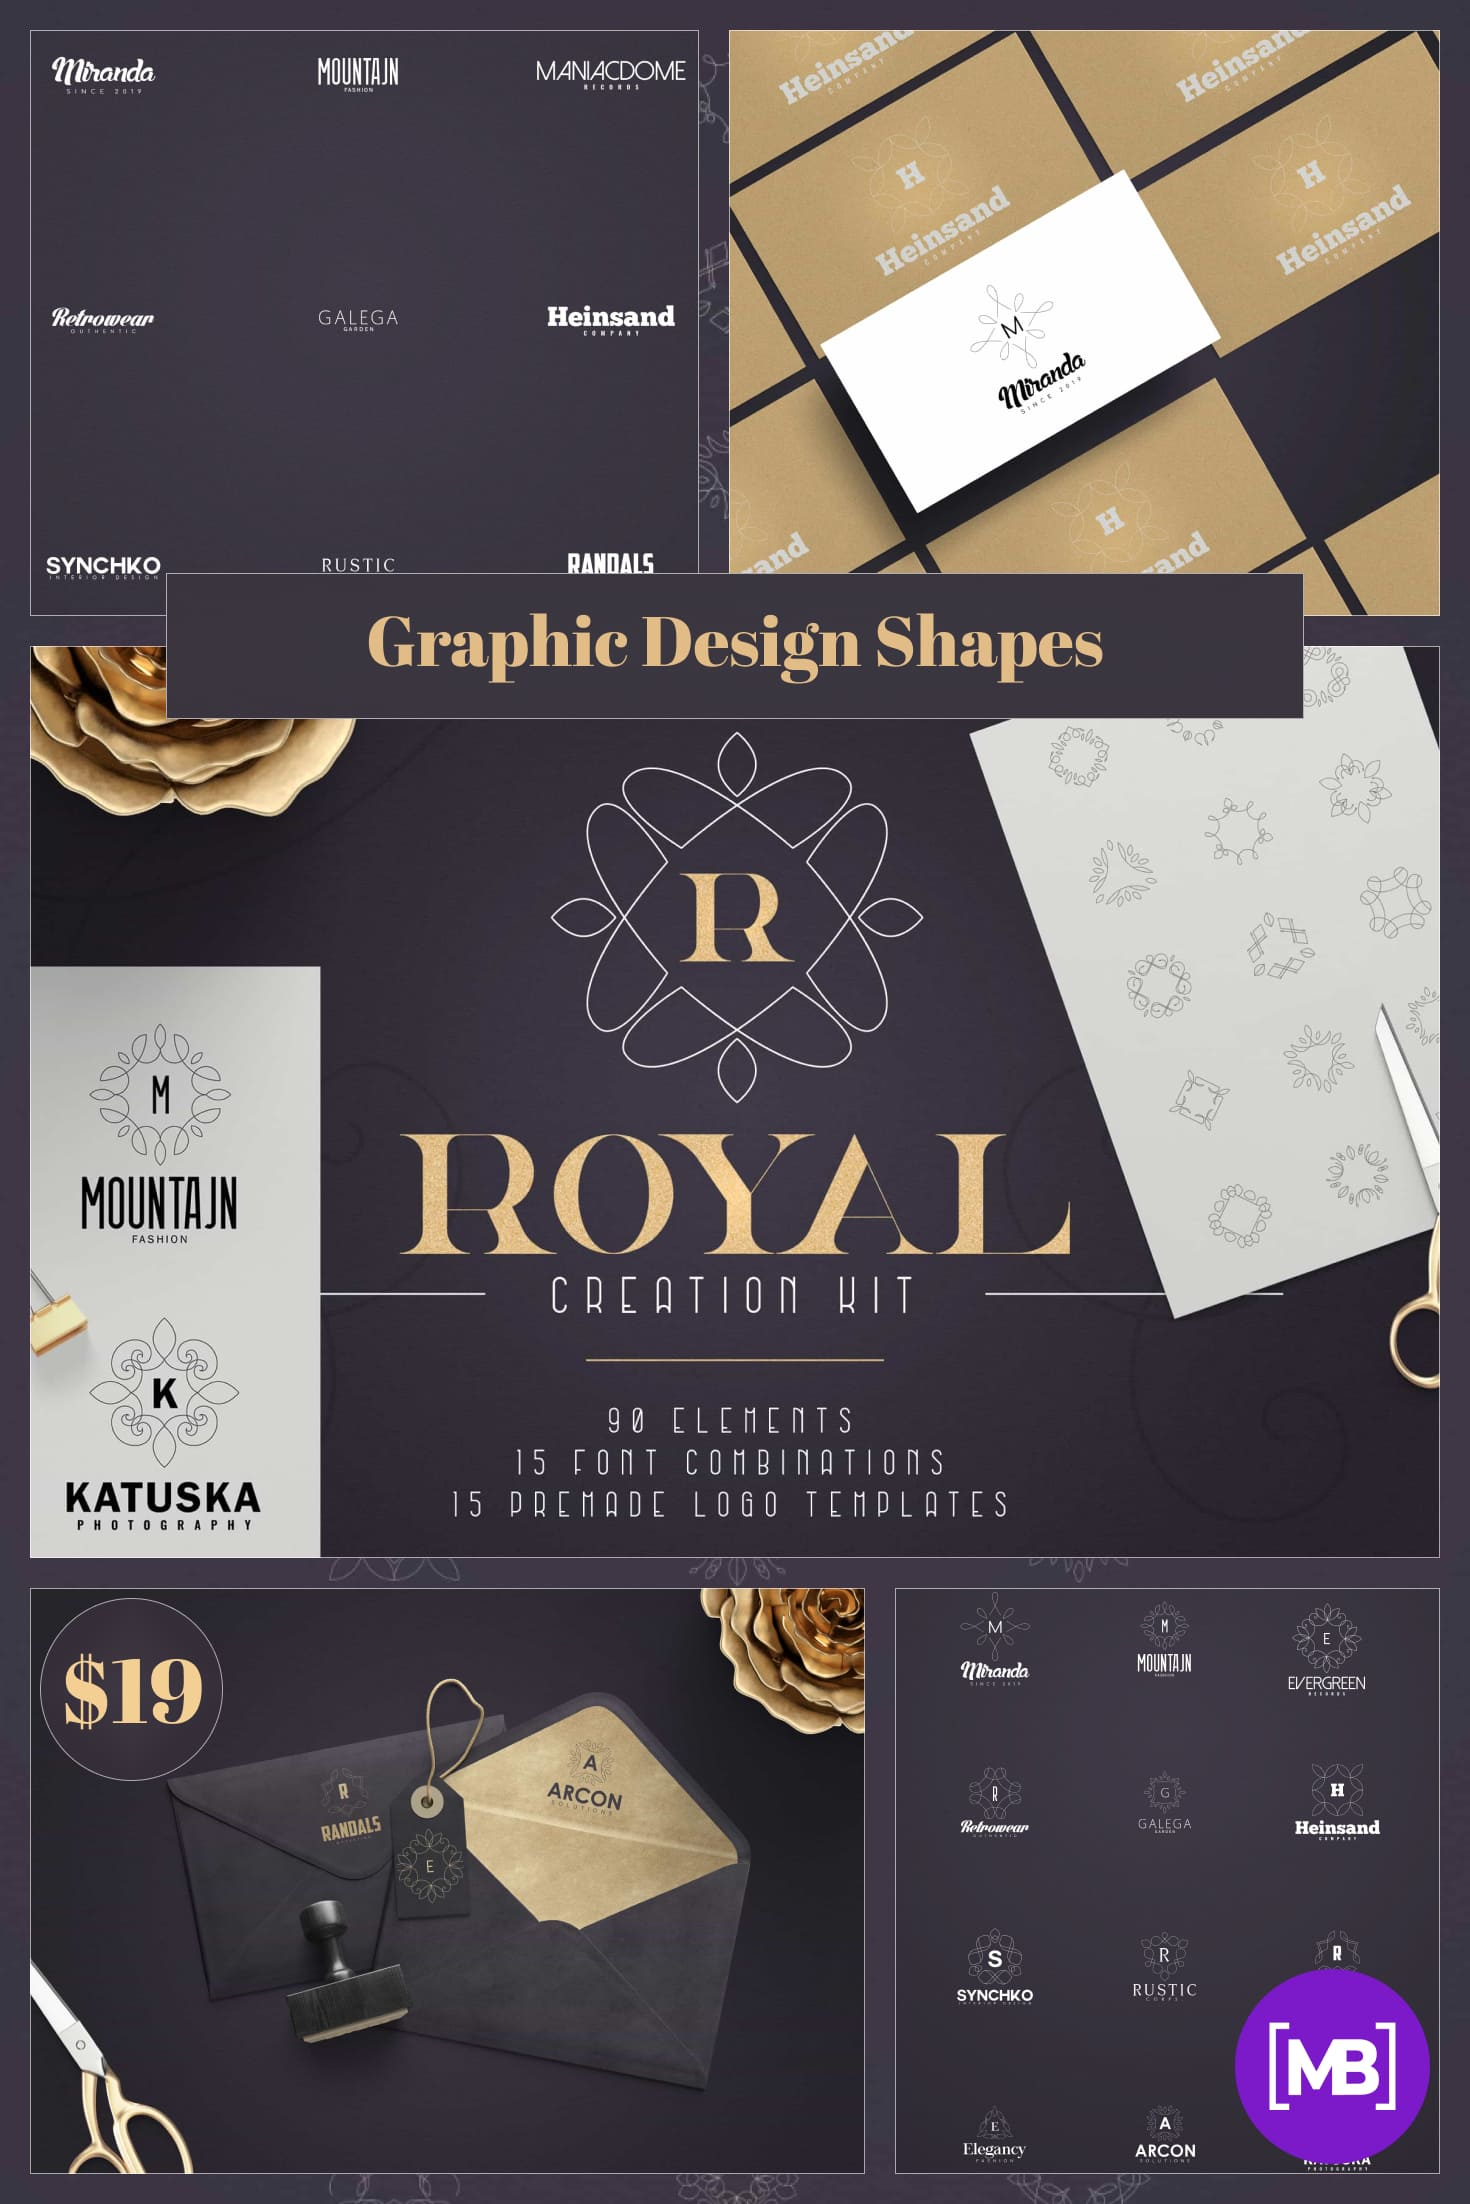 Graphic Design Shapes - Royal Creation Kit 100 Elements. Only $19. Collage Image.